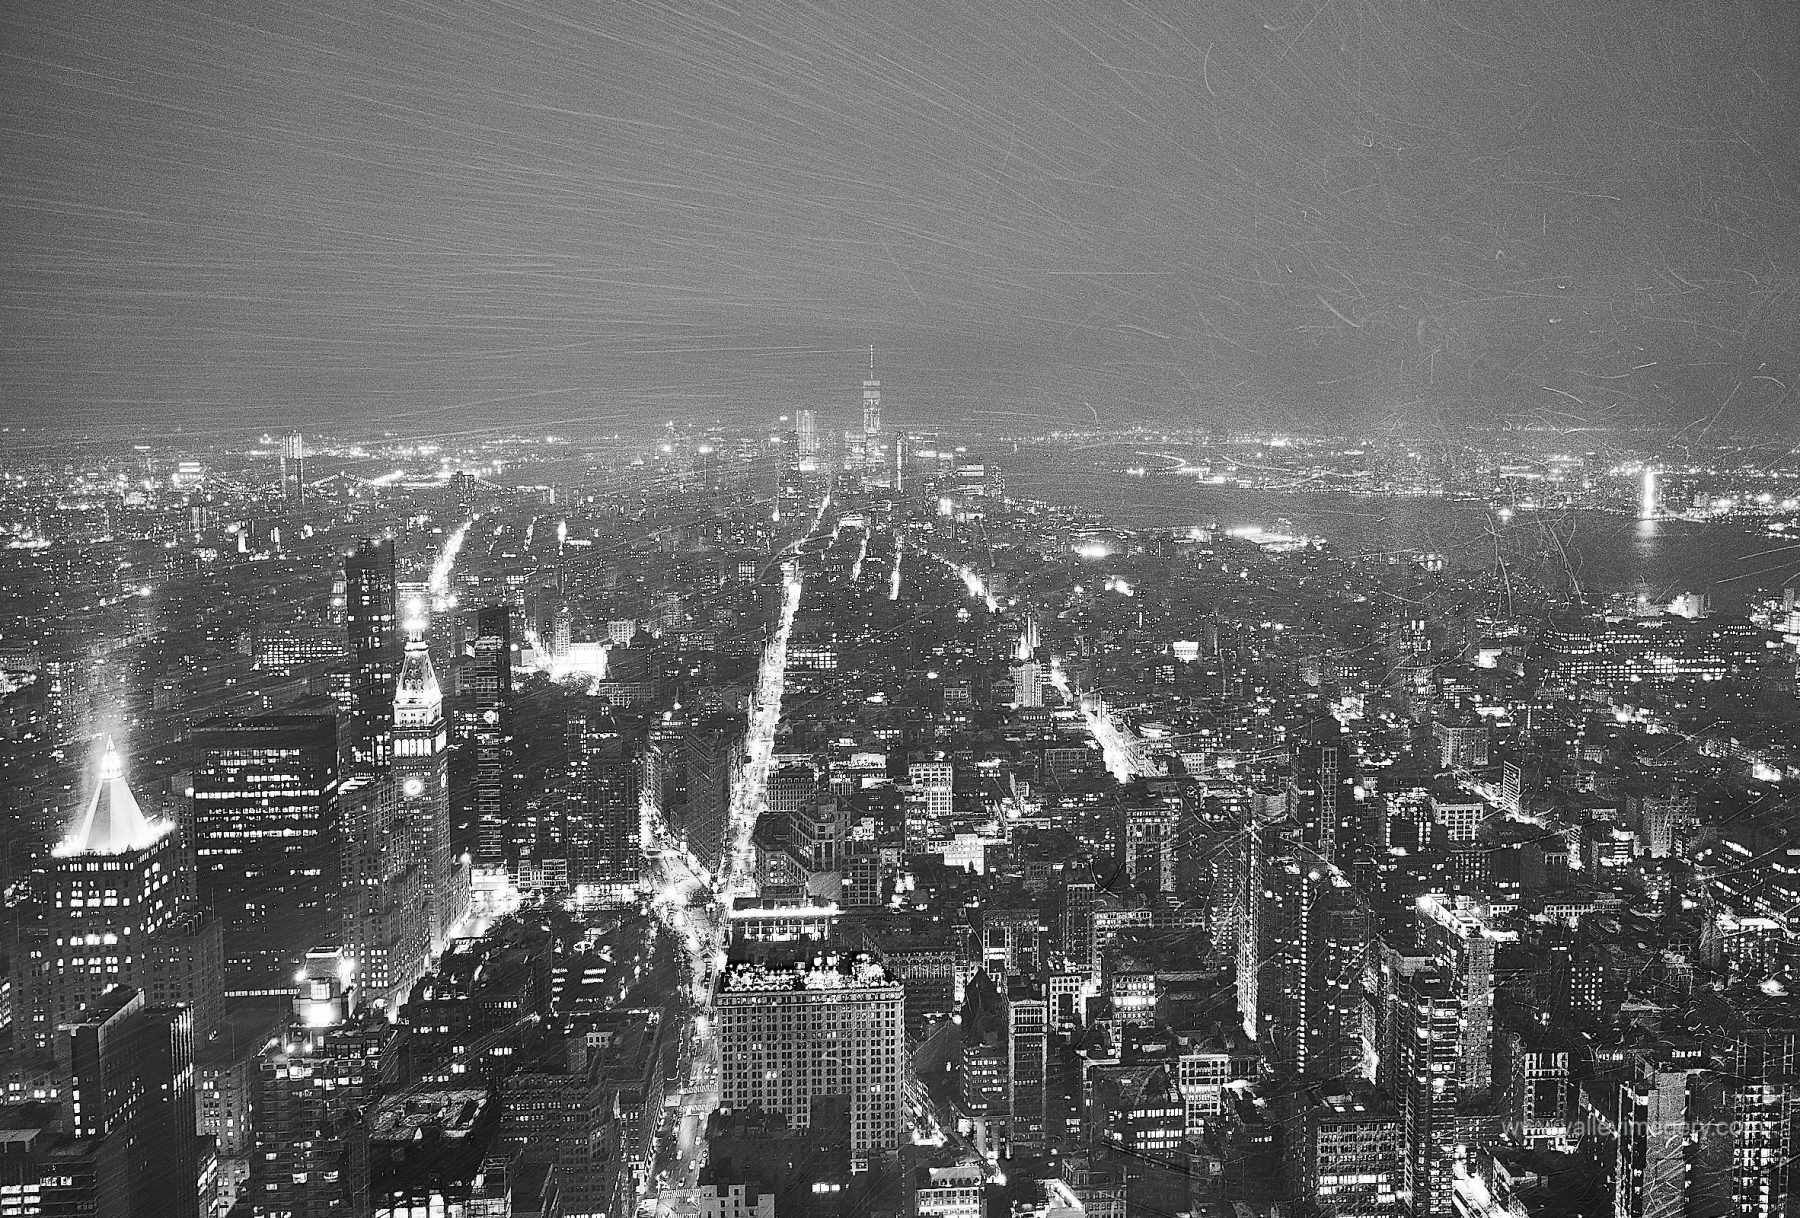 Image taken showing snow trails from the viewing platform on the empire state building.